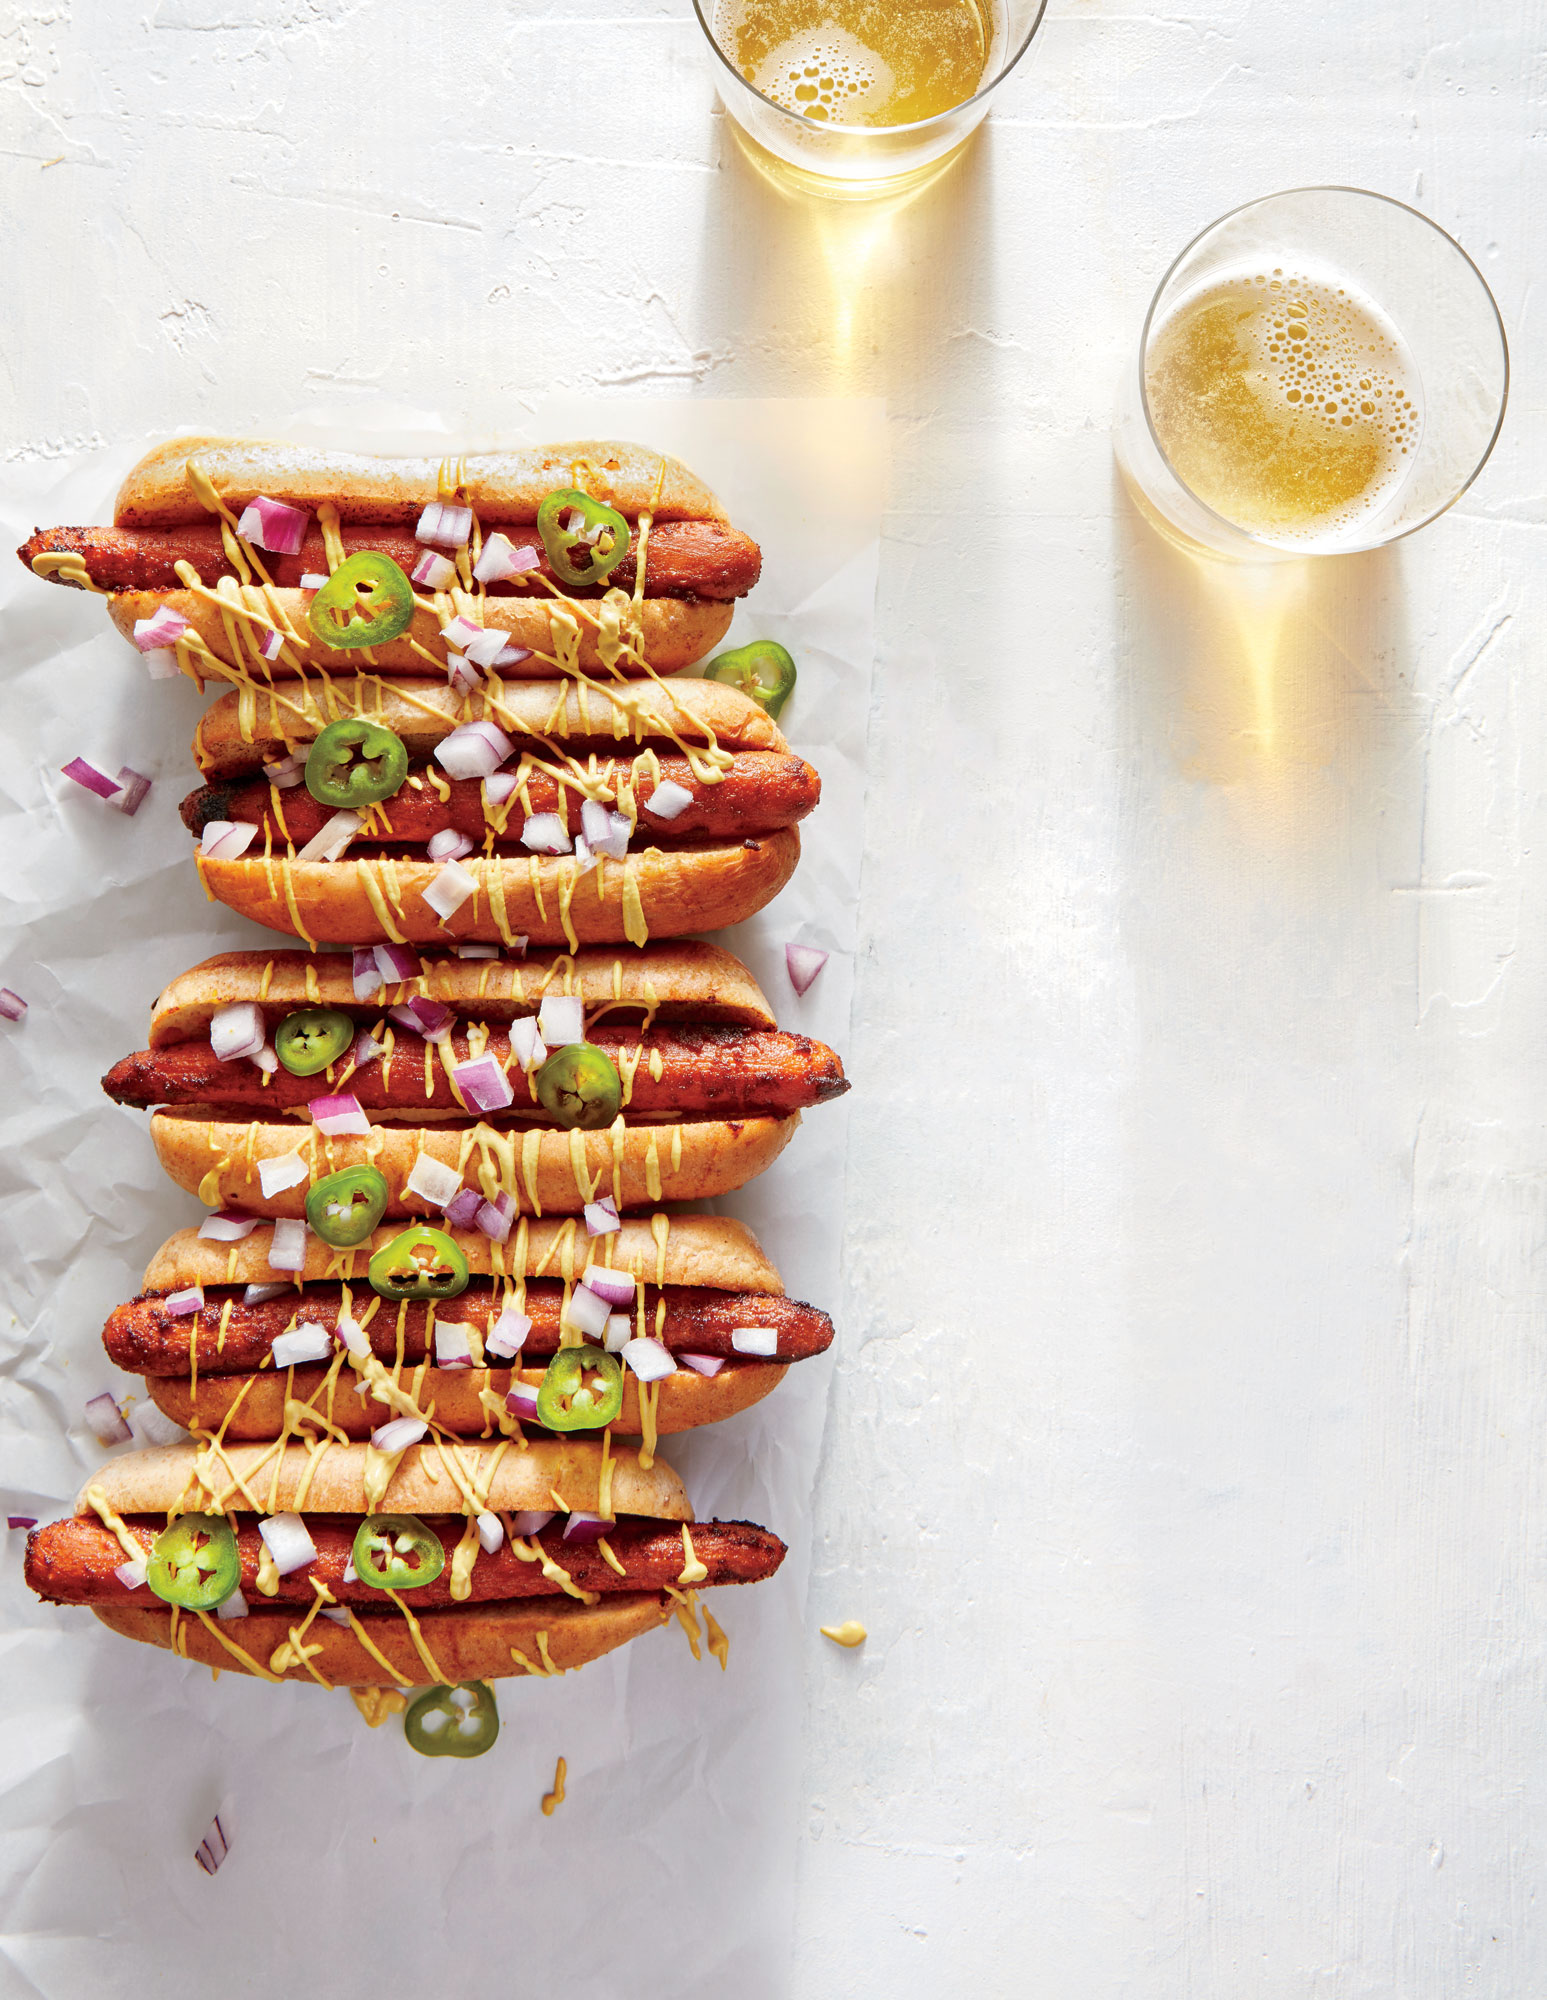 Smoky Carrot Dogs with Nacho Sauce